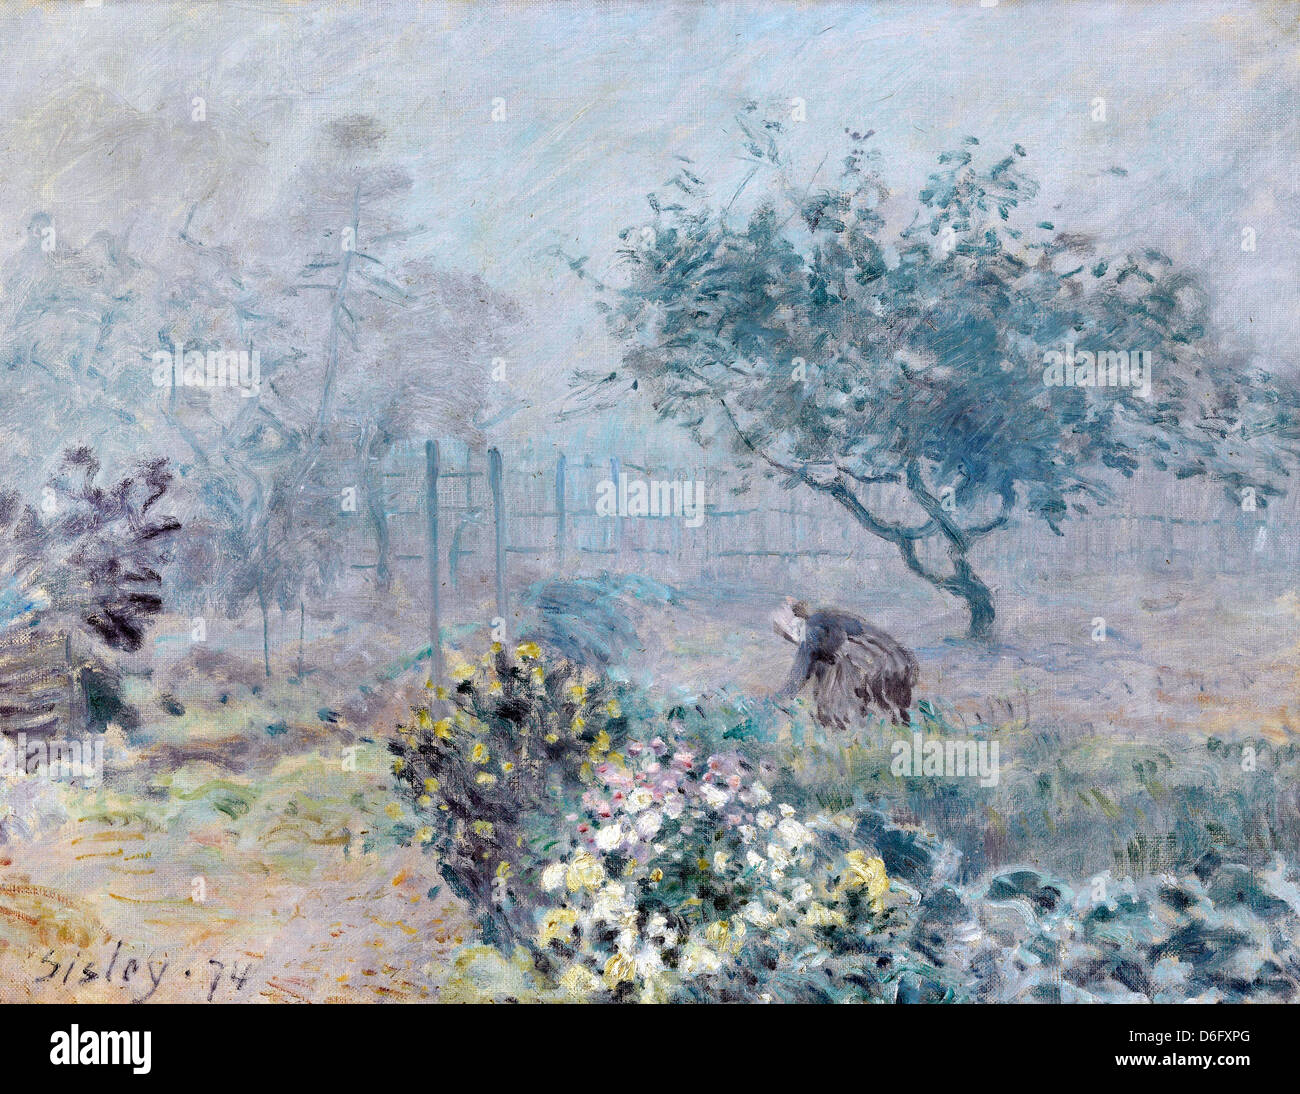 Alfred Sisley, Fog, Voisins 1874 Oil on canvas. Musée d'Orsay, Paris - Stock Image